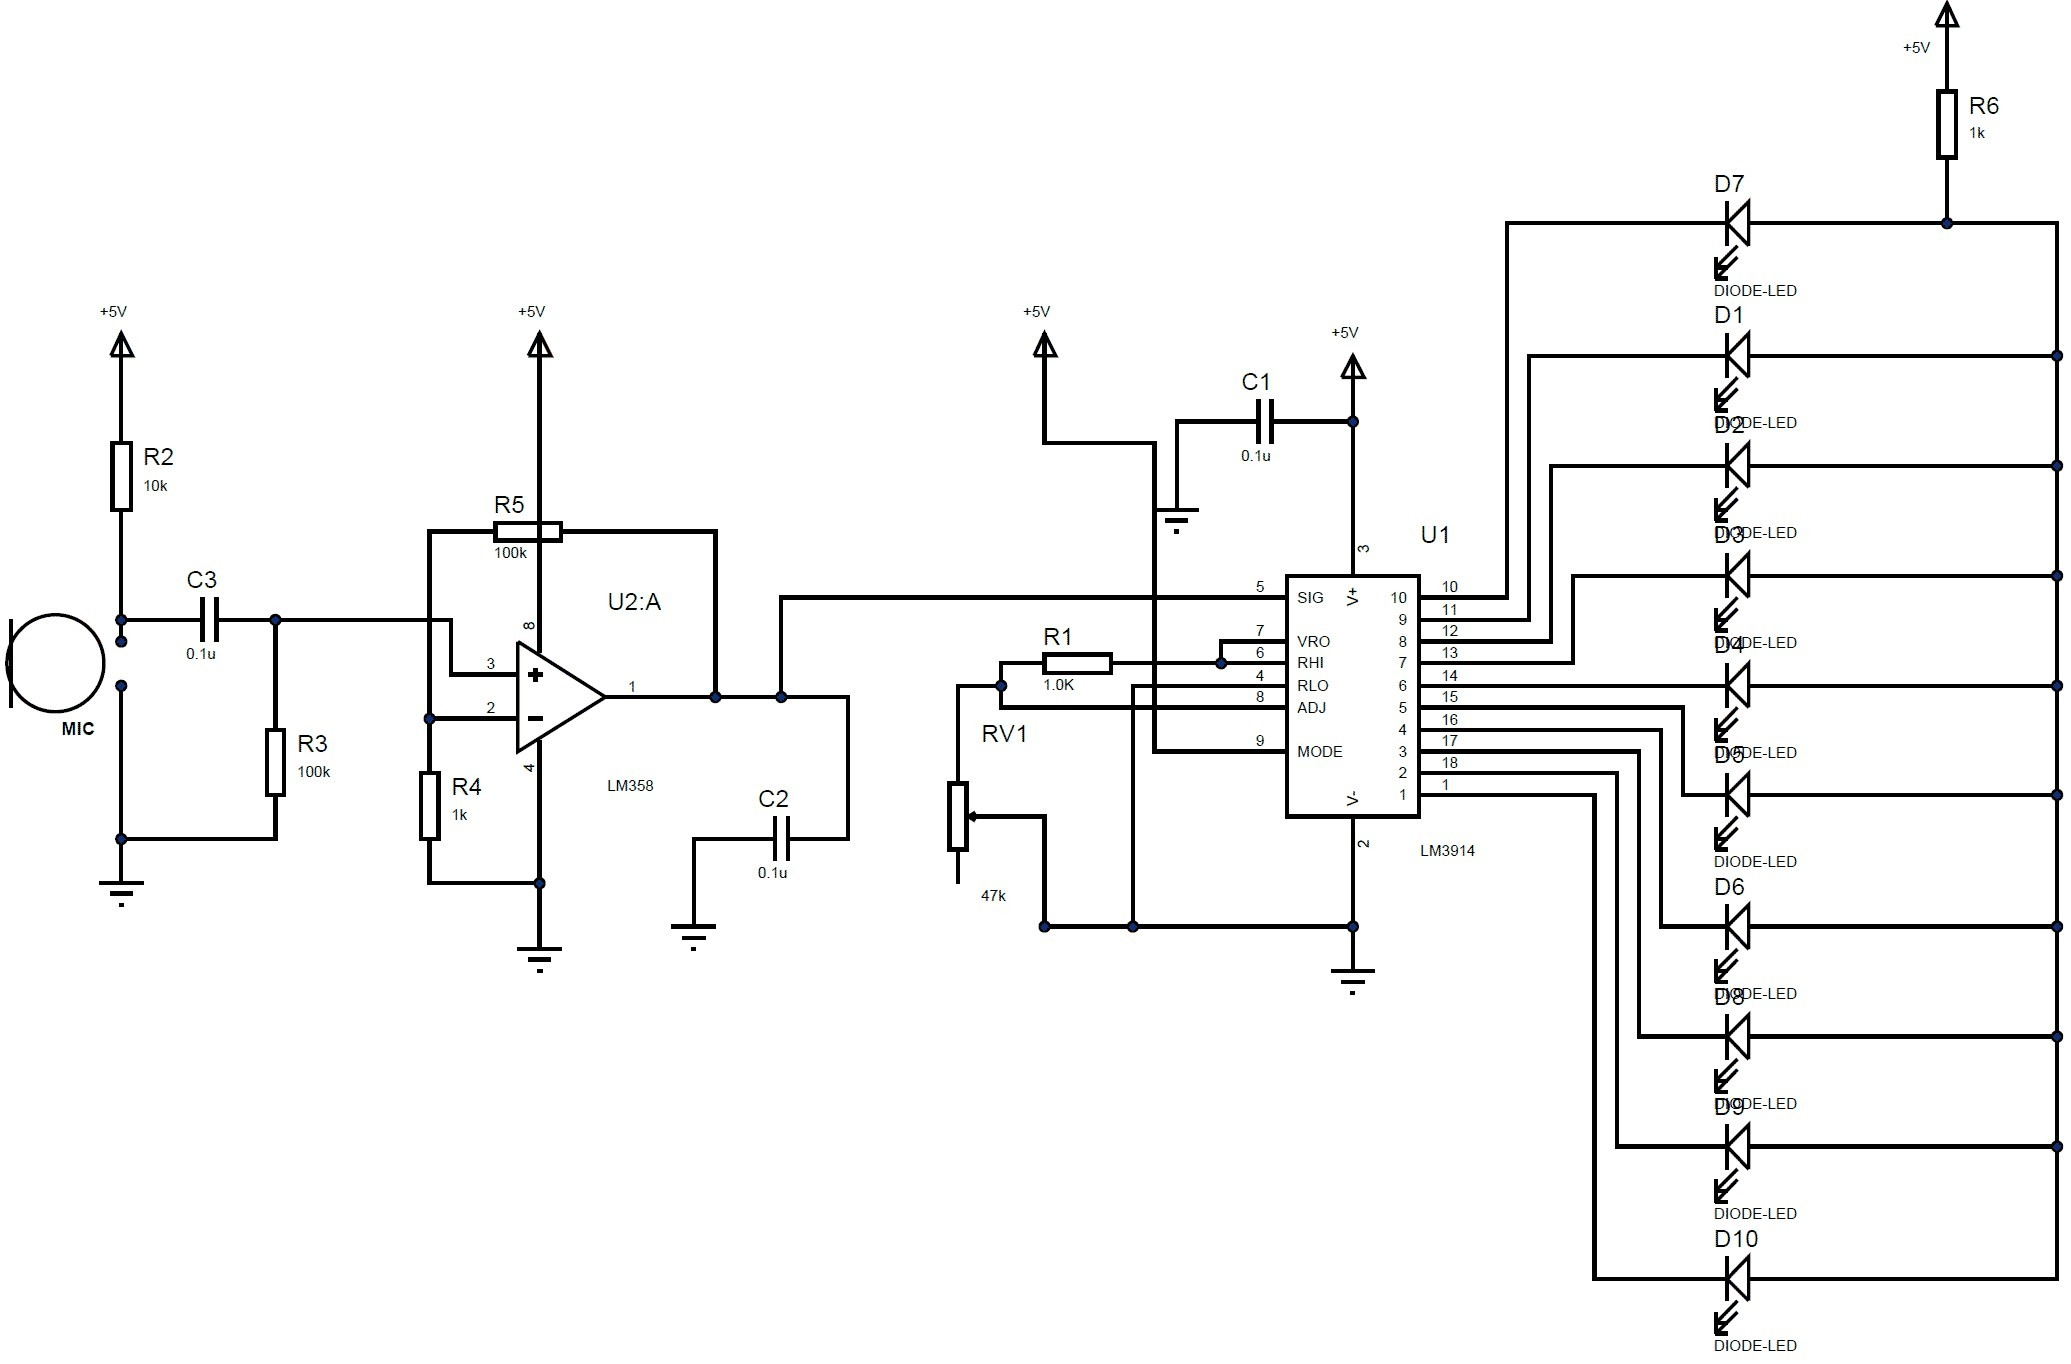 Leviton Photoelectric Switch 1e83 Wiring Diagram | Wiring ... on